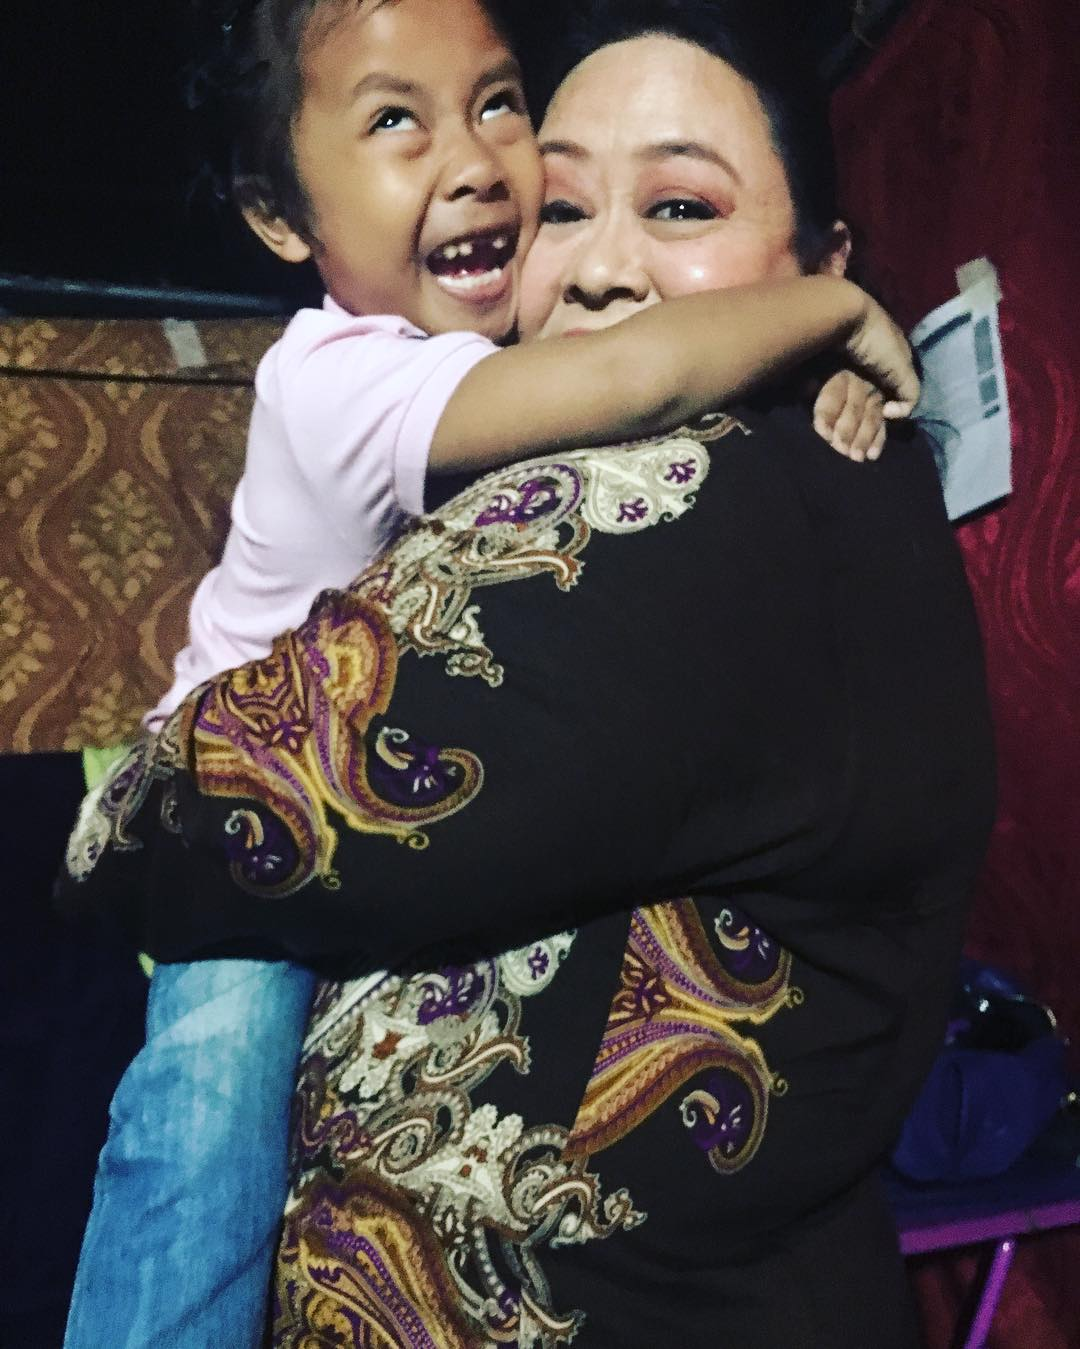 LOOK: Onyok with the beautiful ladies of FPJ's Ang Probinsyano